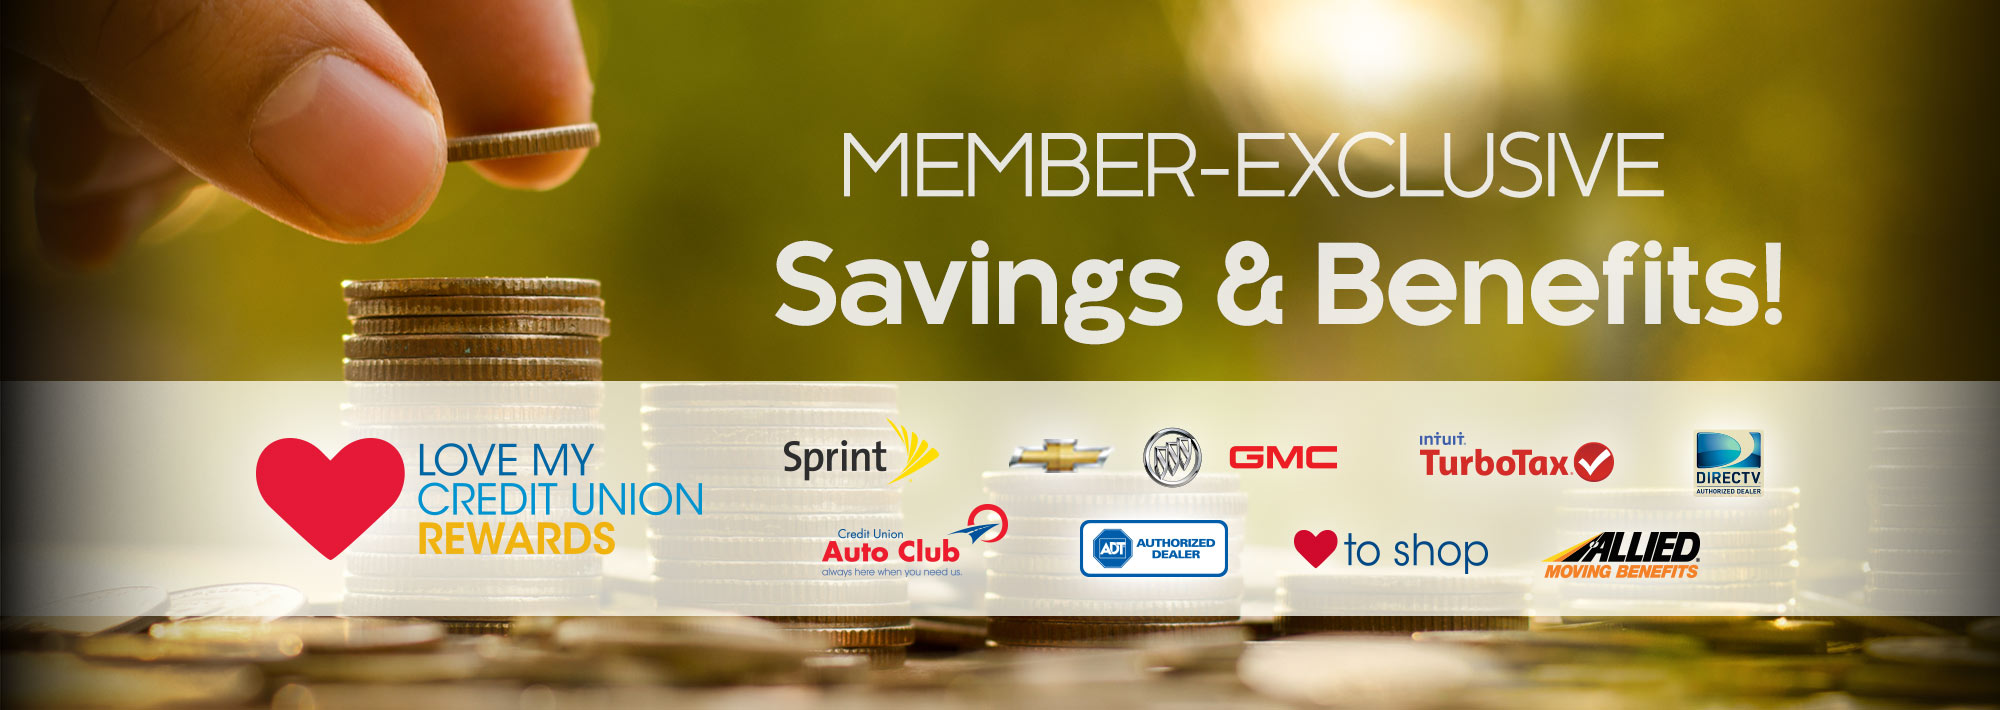 Member Exclusives of savings and benefits thru Love My Credit Union.